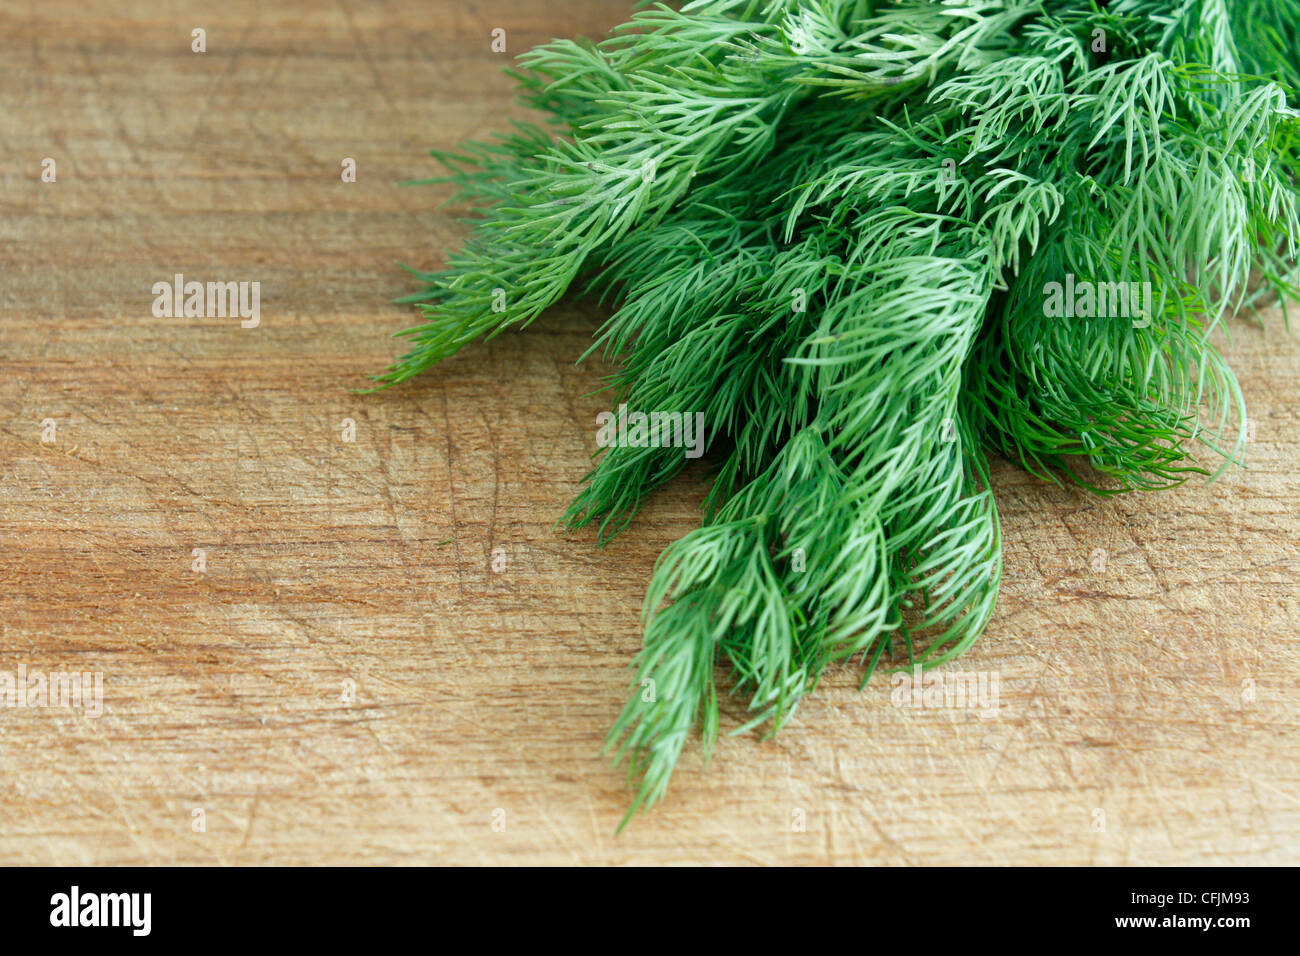 Delicious fresh dill from the garden - Stock Image